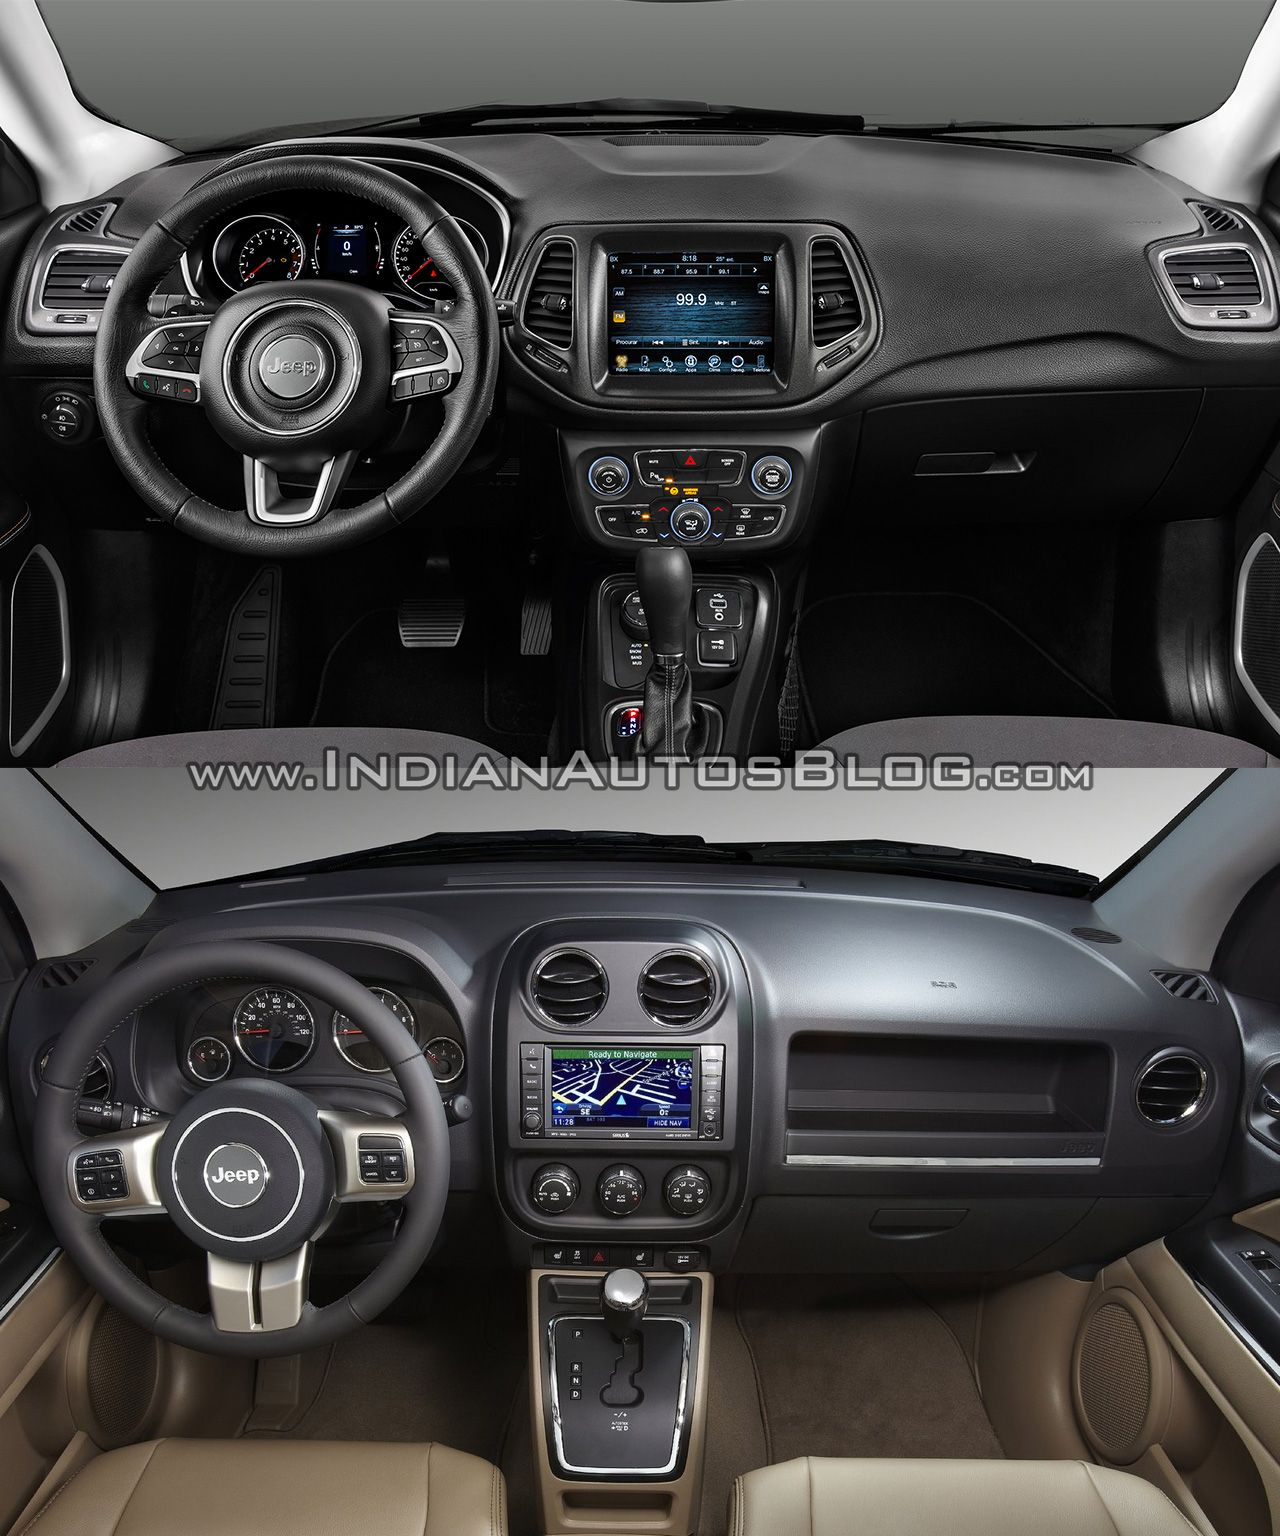 jeep compass 2014 interior. Black Bedroom Furniture Sets. Home Design Ideas